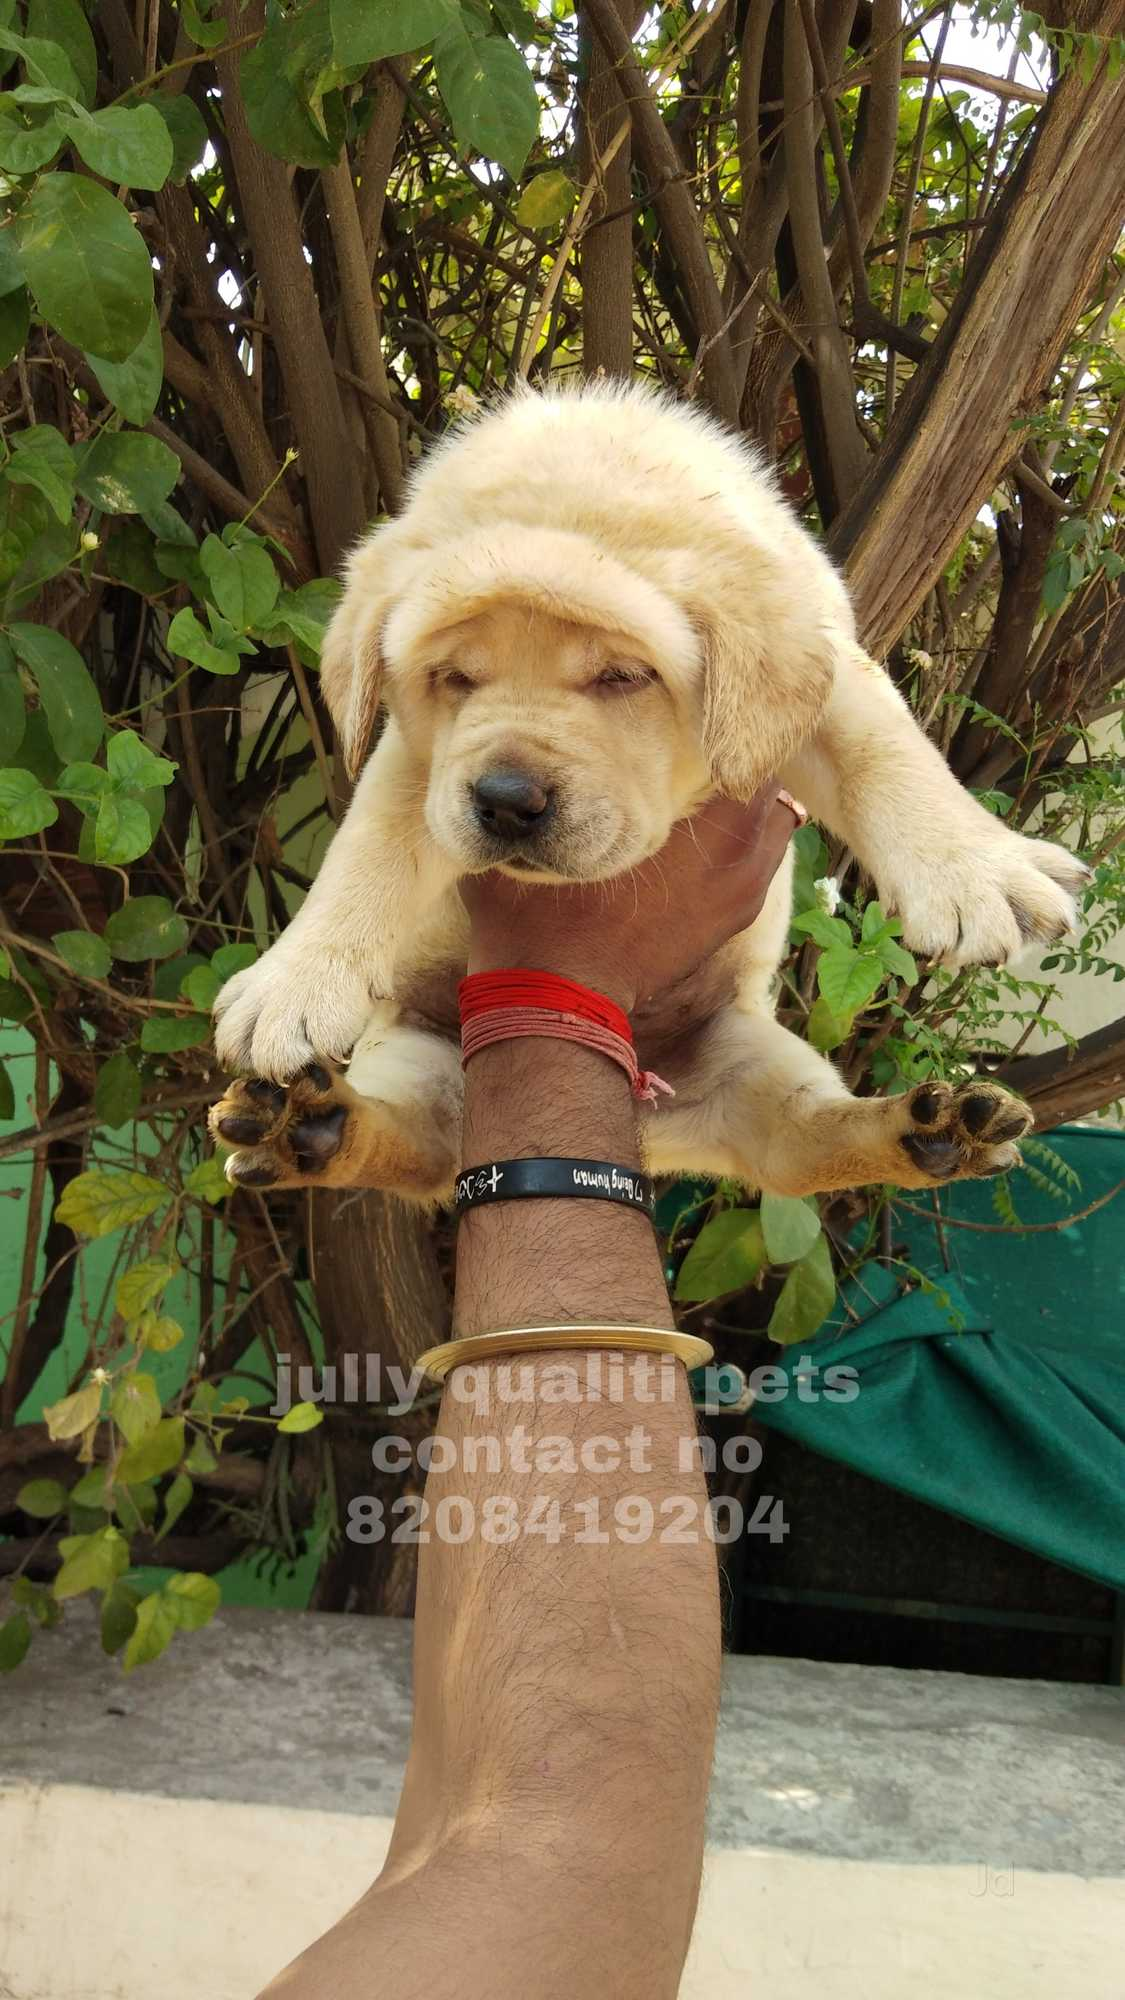 Top 20 Pet Shops For Dog in Amravati - Best Pet Store - Justdial